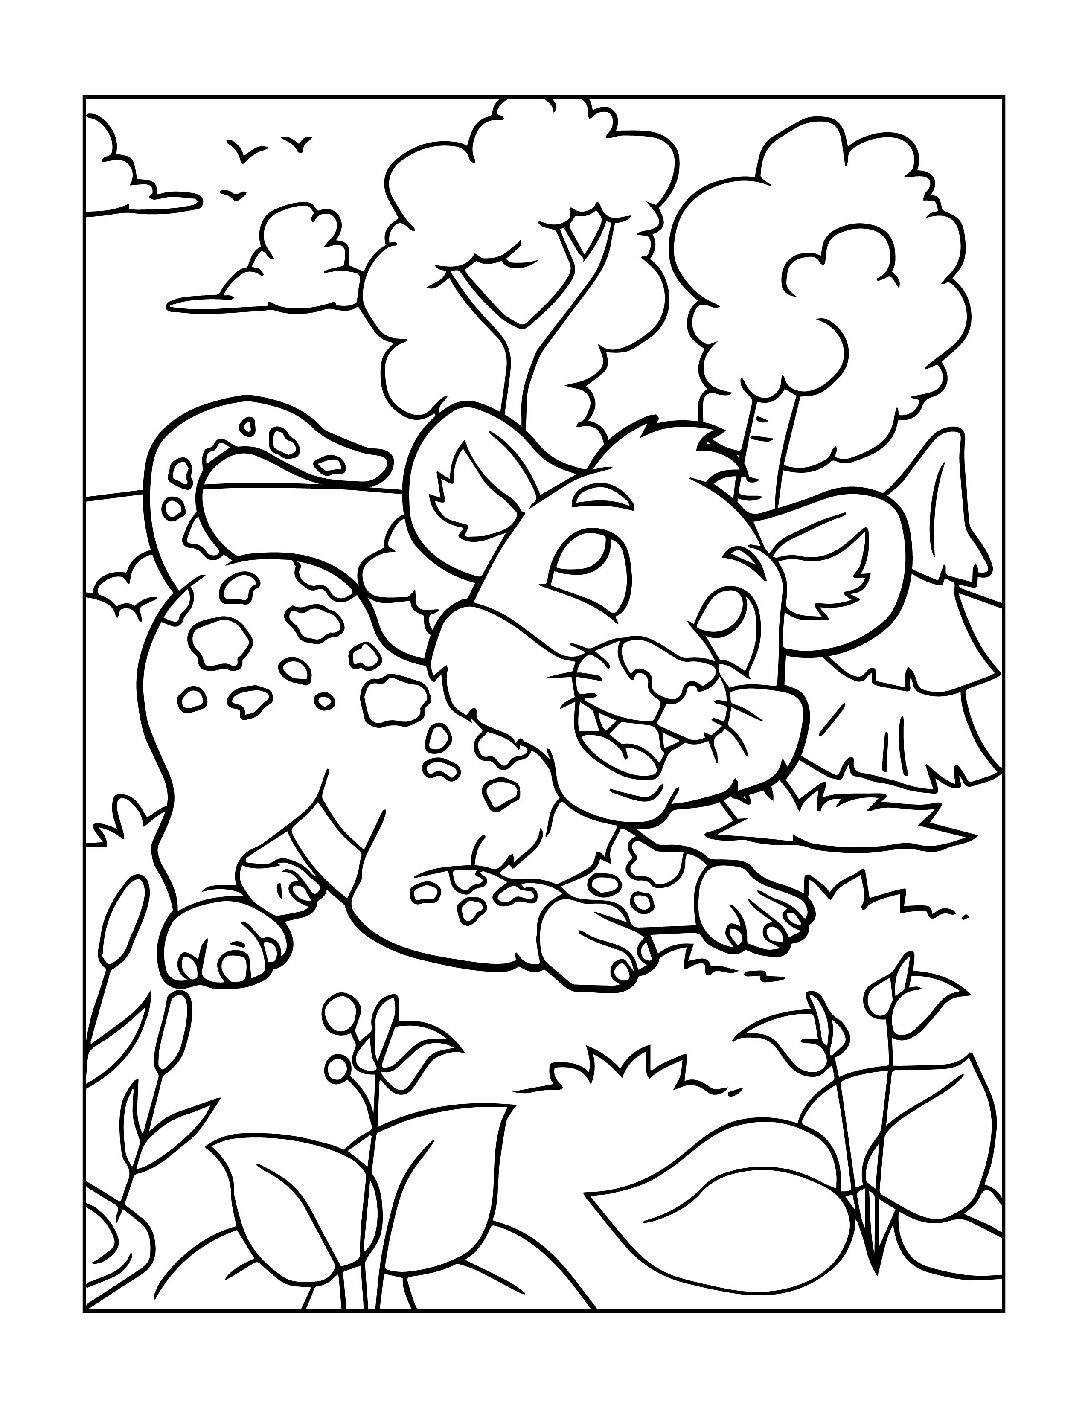 free printable zoo coloring pages free printable zoo coloring pages for kids free zoo printable coloring pages